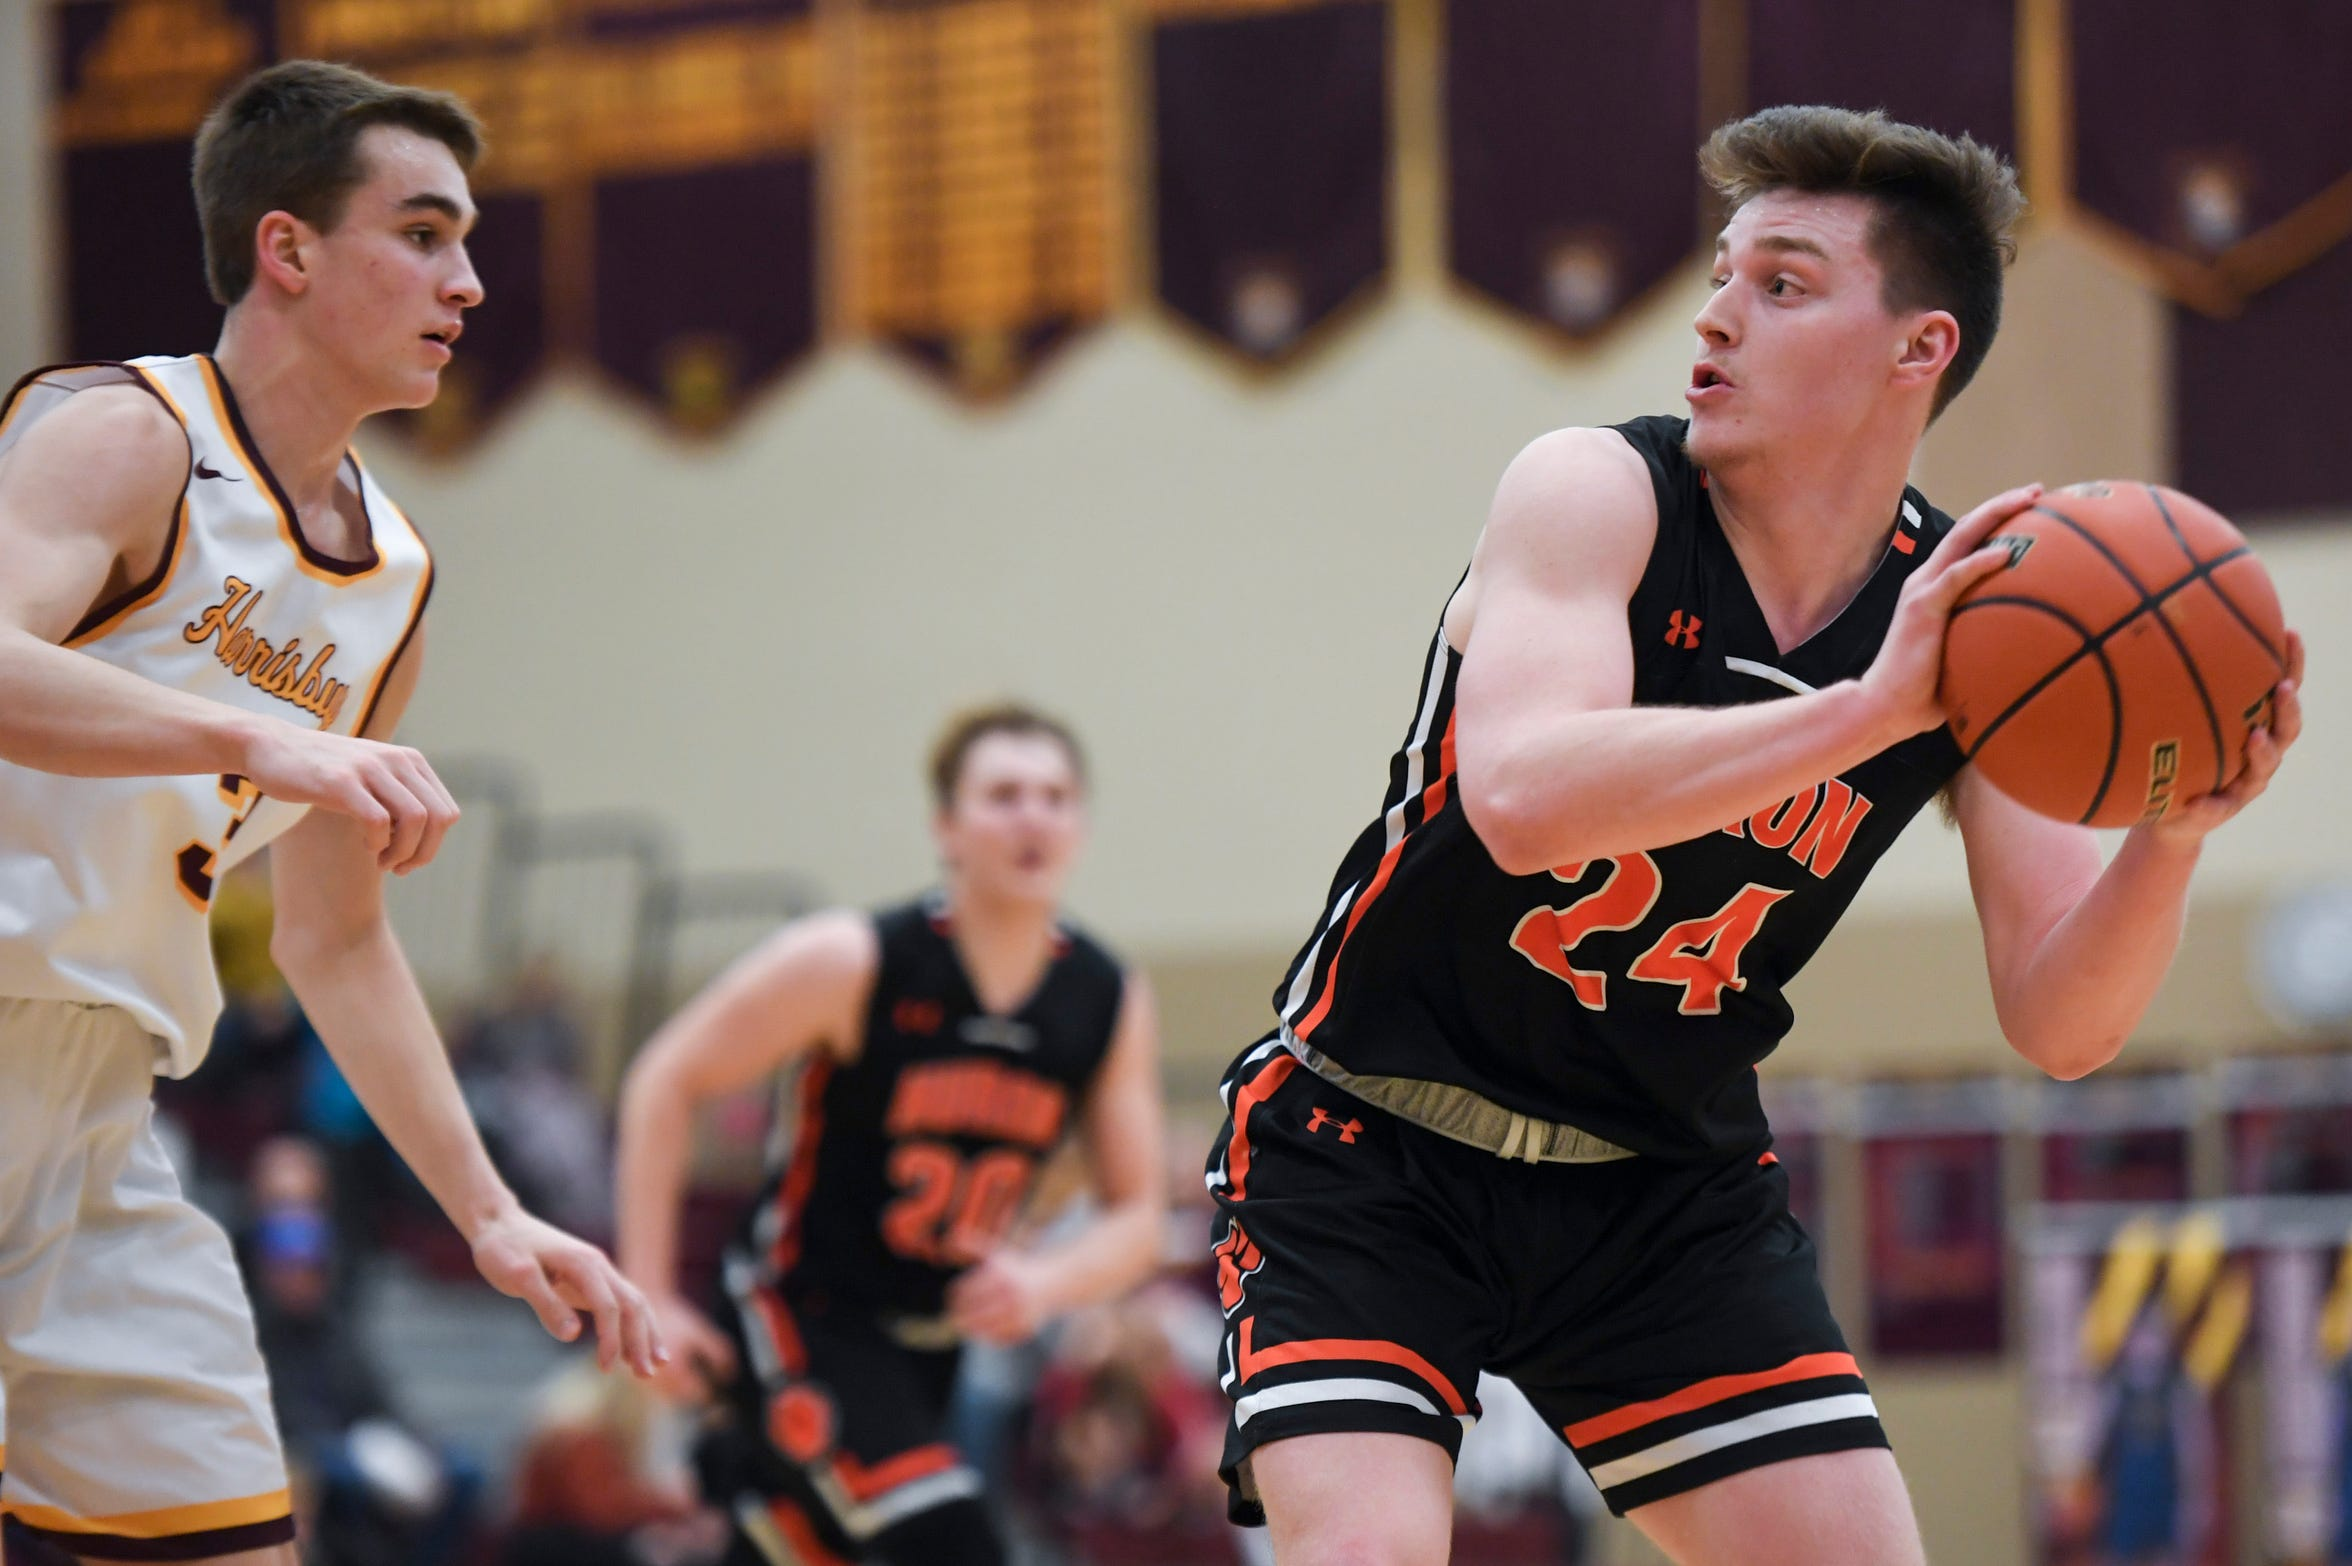 Huron's Kobe Busch (24) looks to make a pass during the game against Harrisburg on Tuesday, Jan. 28, 2020 at Harrisburg High School.